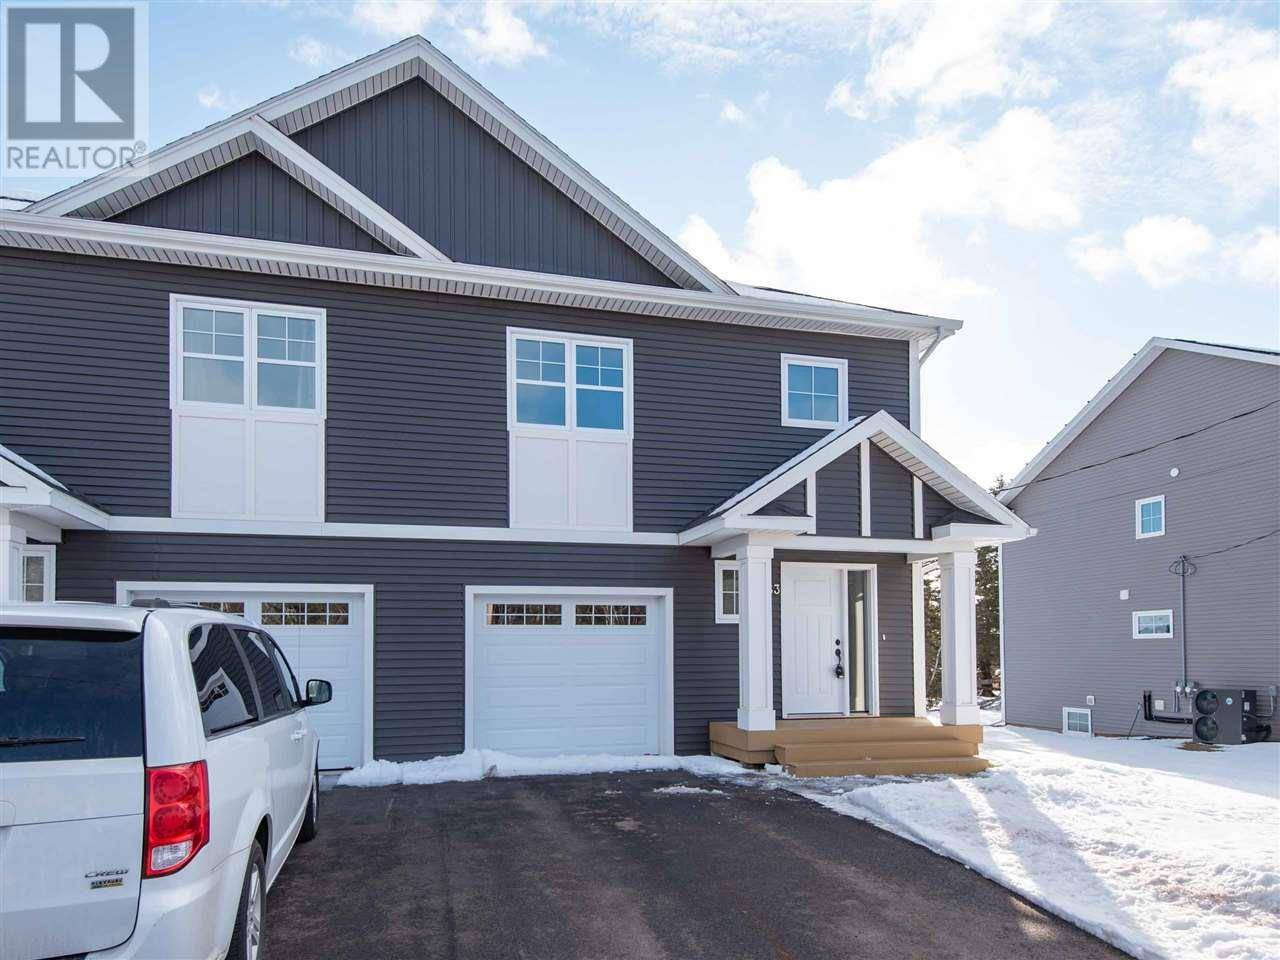 House for sale at 63 Royalty Rd Charlottetown Prince Edward Island - MLS: 202000062